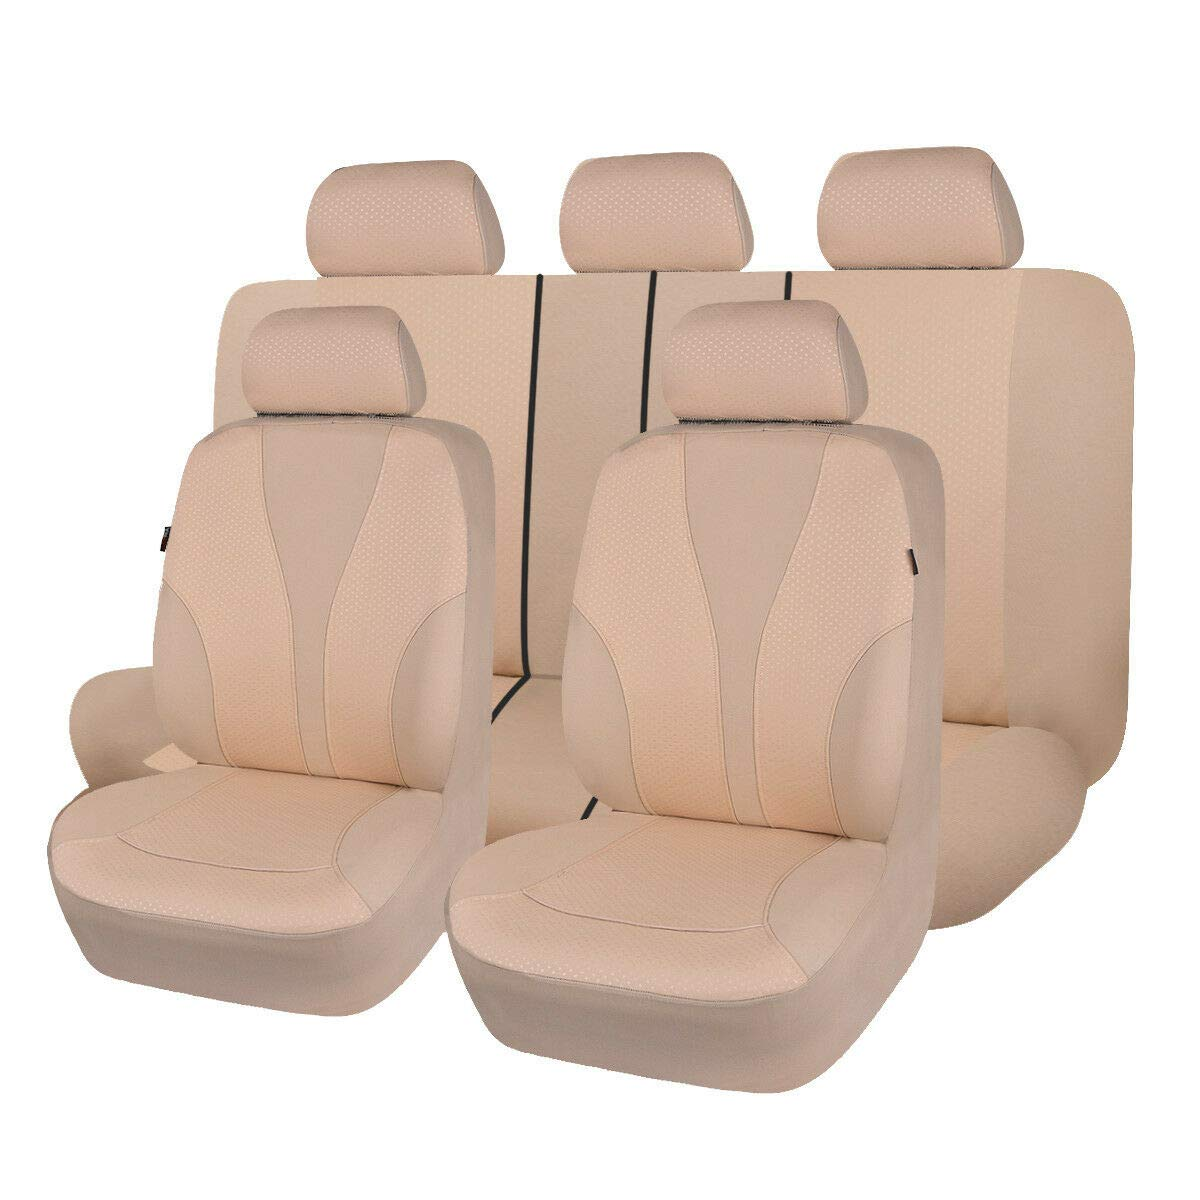 Polyester Fabric Beige 031-Style Universal fit Most Car,Truck,SUV and Van Flying Banner 9 PCS Car Seat Covers Full Cover Hot Stamp Breathable Composite Sponge Inside Airbag Compatible